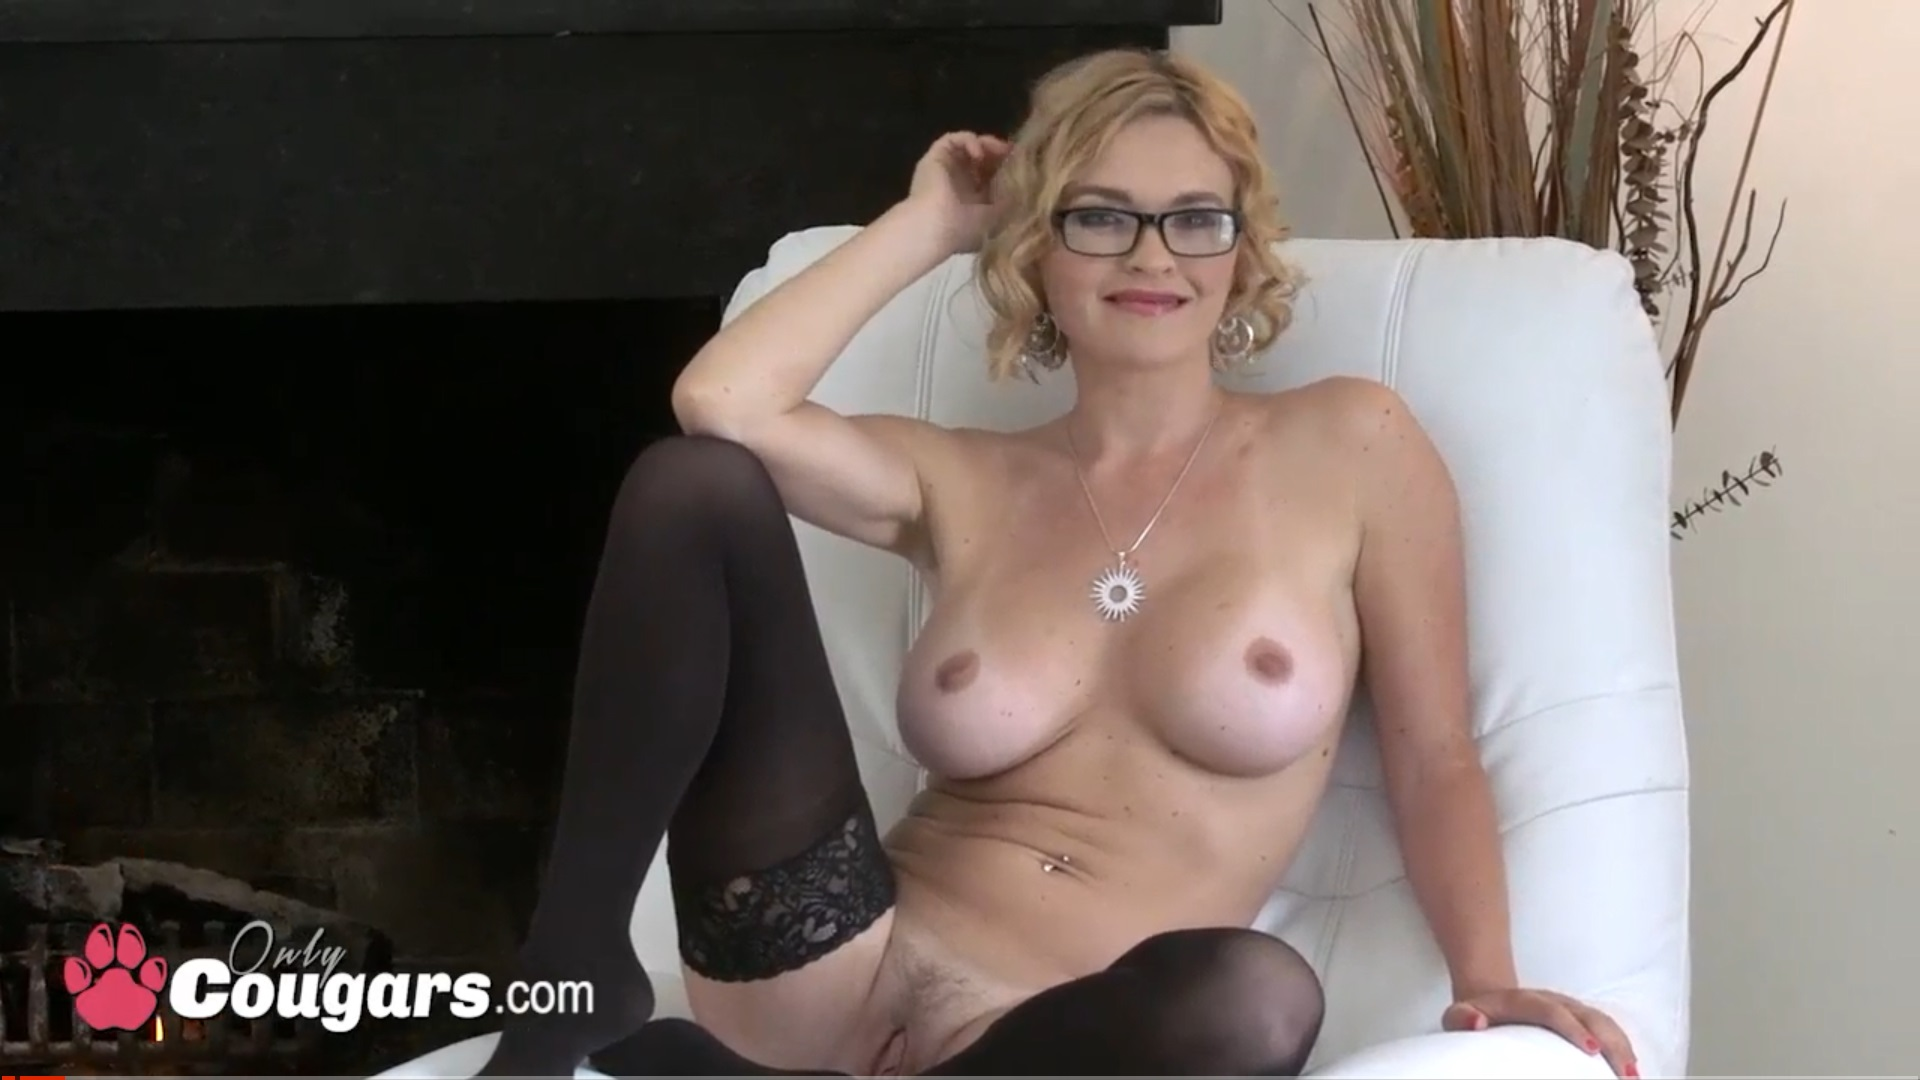 Www Only Cougars Com